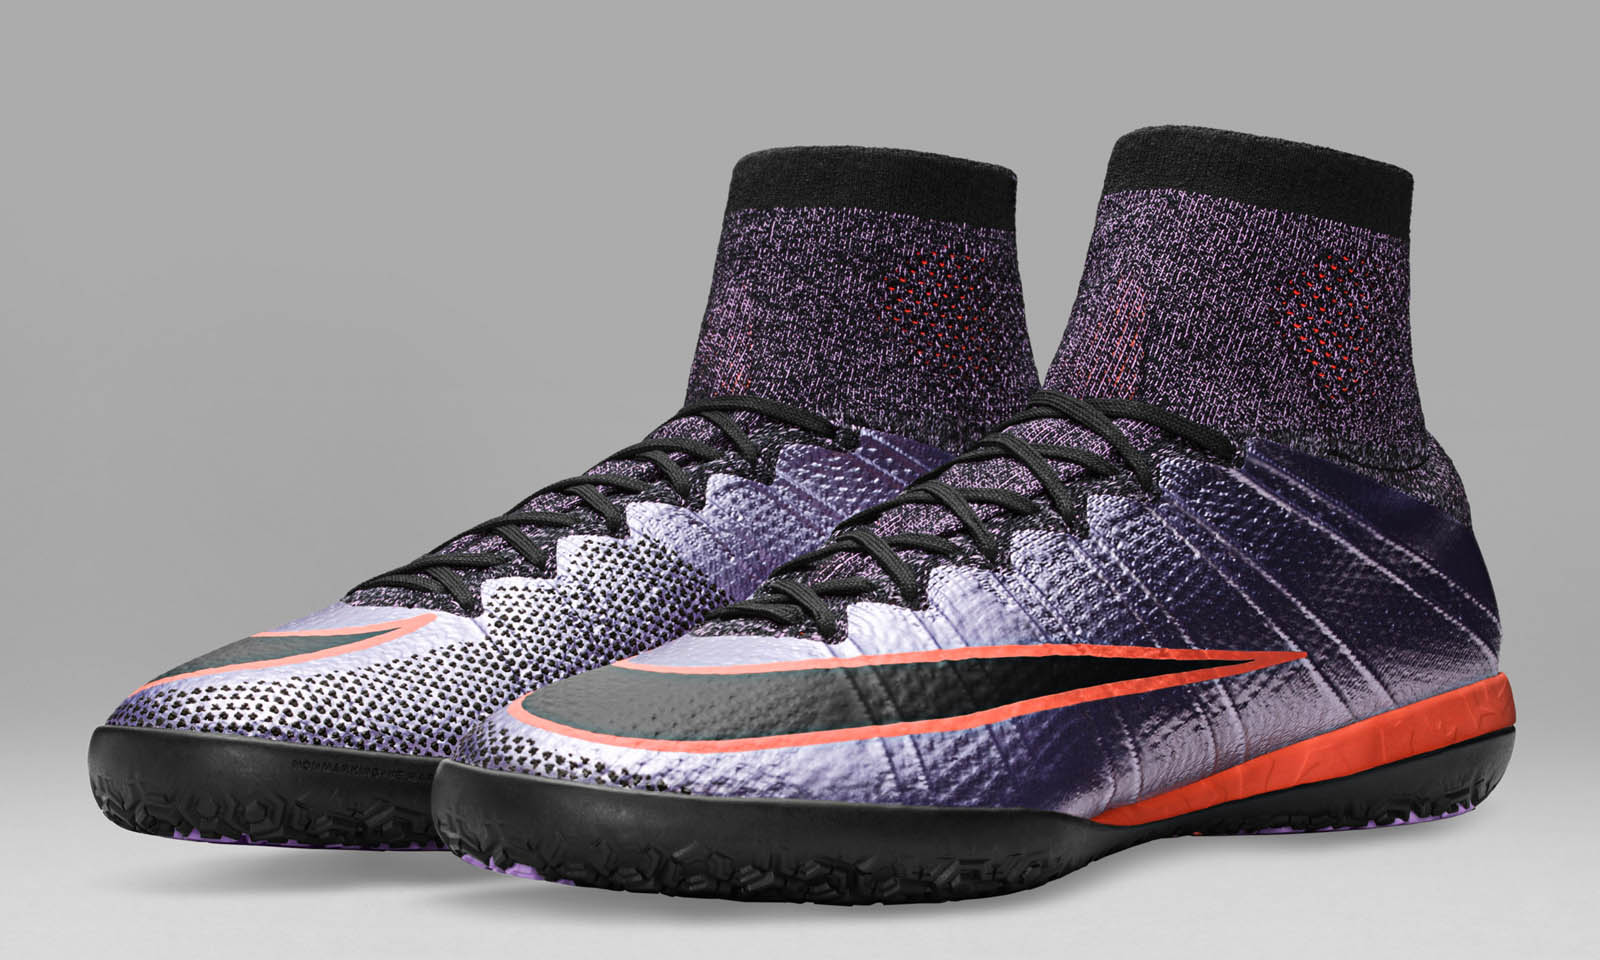 free shipping 1017f 310a8 ... the Nike MercurialX Proximo are one of the high-end shoes of Cristiano  Ronaldo Nike Mercurial Superfly ...